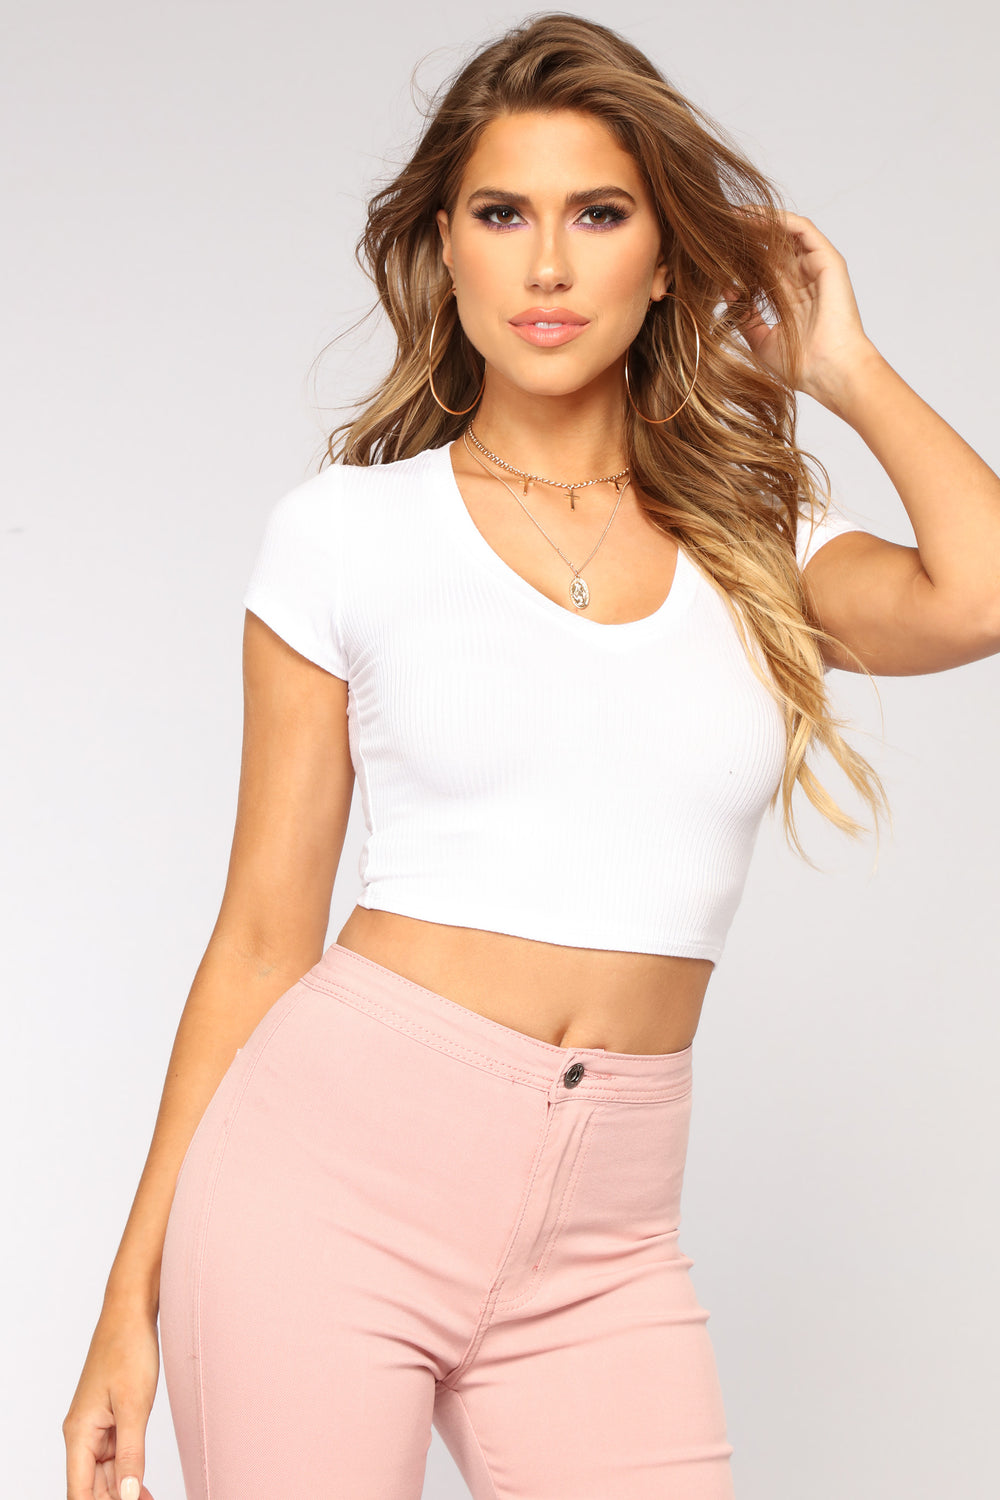 Little Do You Know Crop Top - White